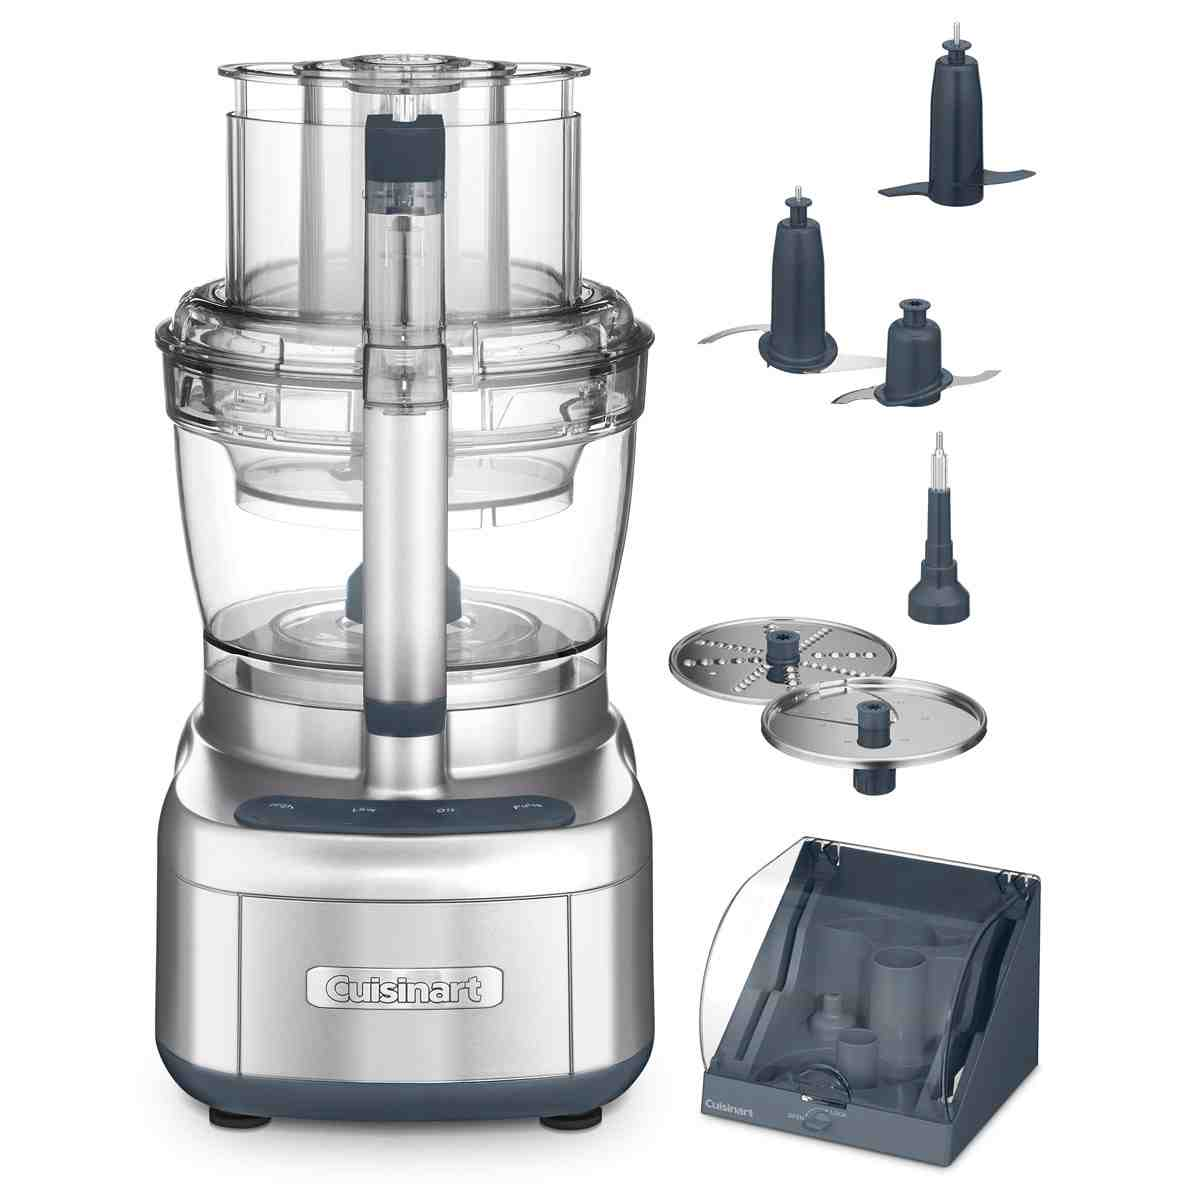 Cuisinart 13-Cup Elemental Food Processor